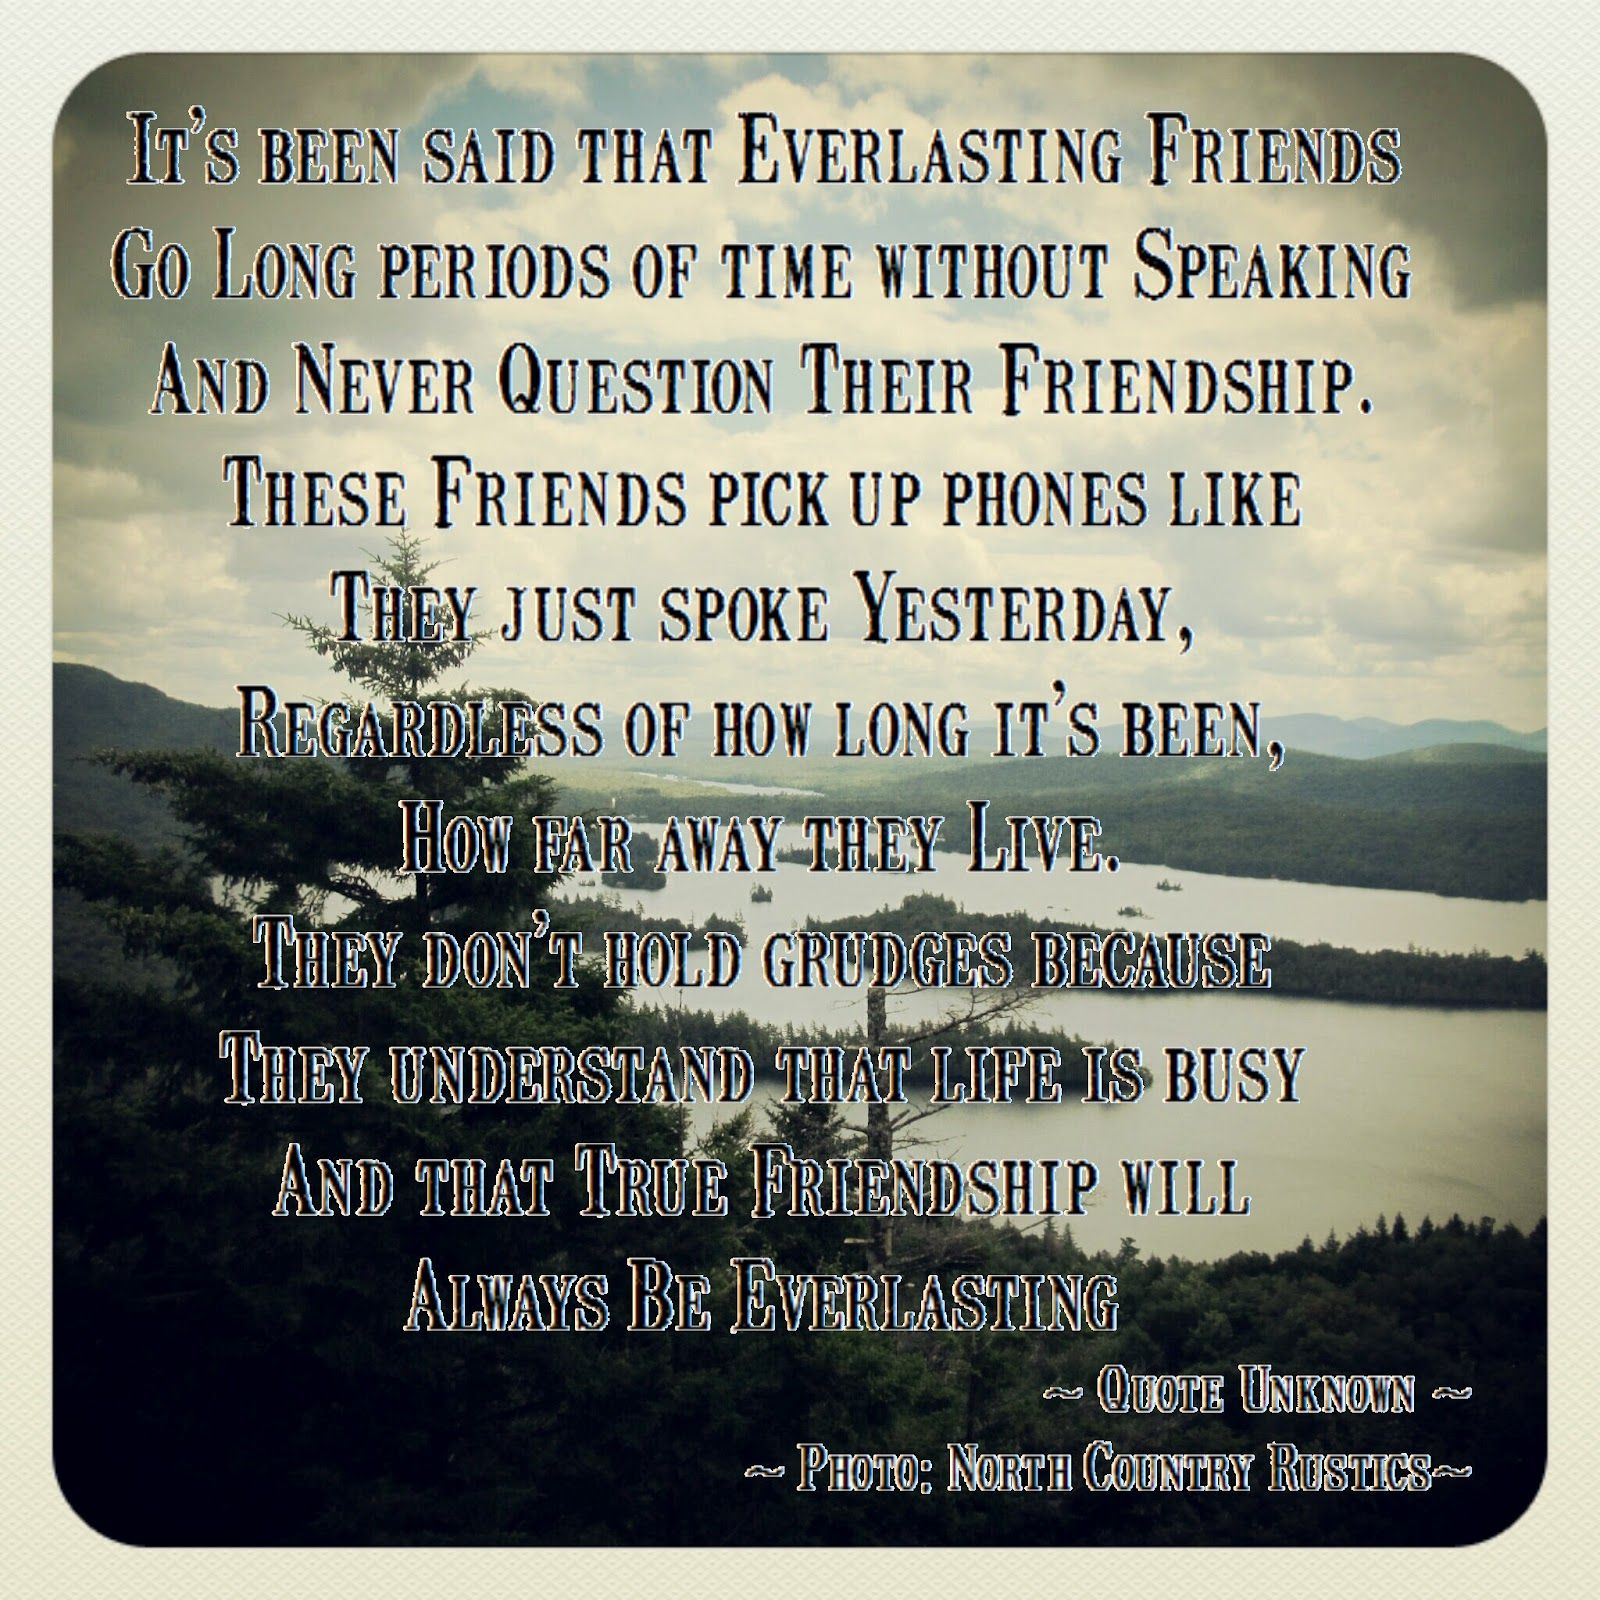 Everlasting Friendship Quote Photo By North Country Rustics I Need